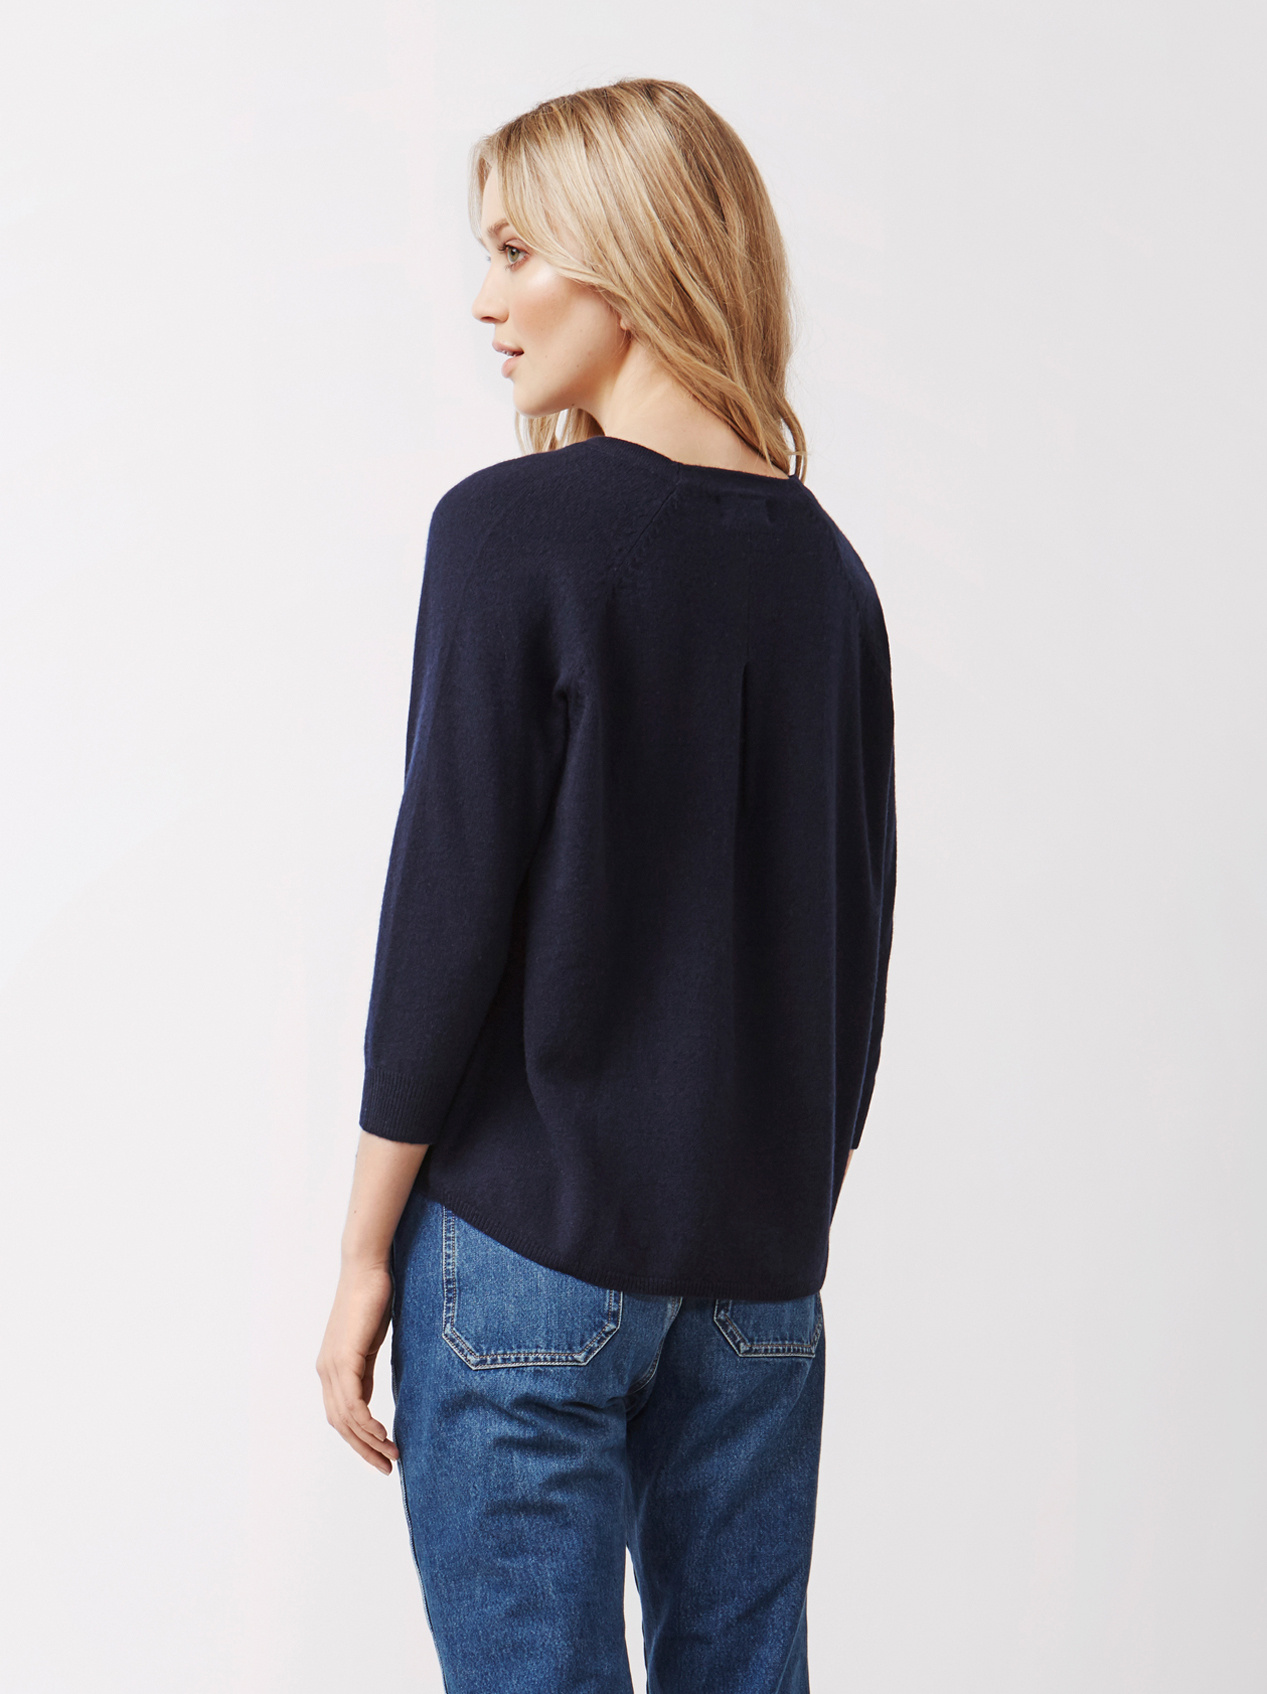 Soft Goat Women's Rounded Sweater Navy